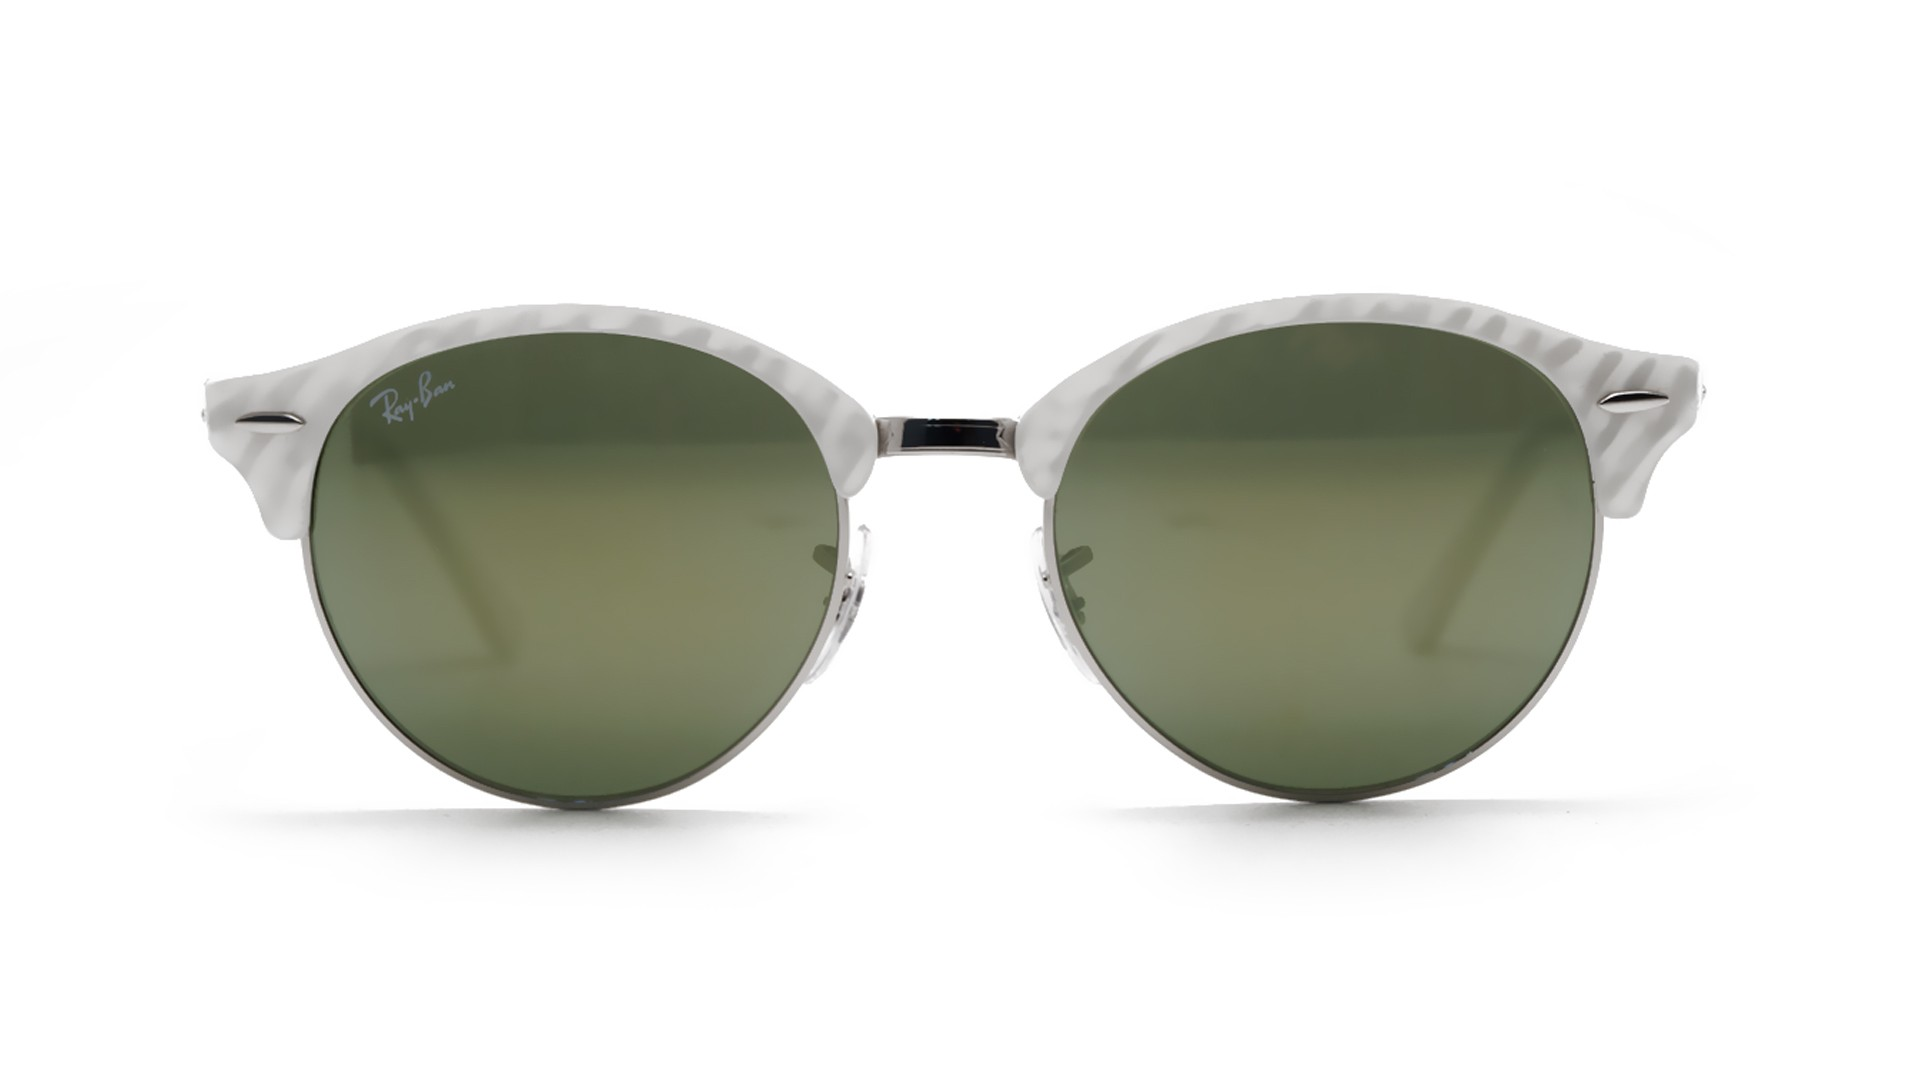 8ae7f79be545f Sunglasses Ray-Ban Clubround White Flash Lenses RB4246 988 2X 51-19 Medium  Mirror